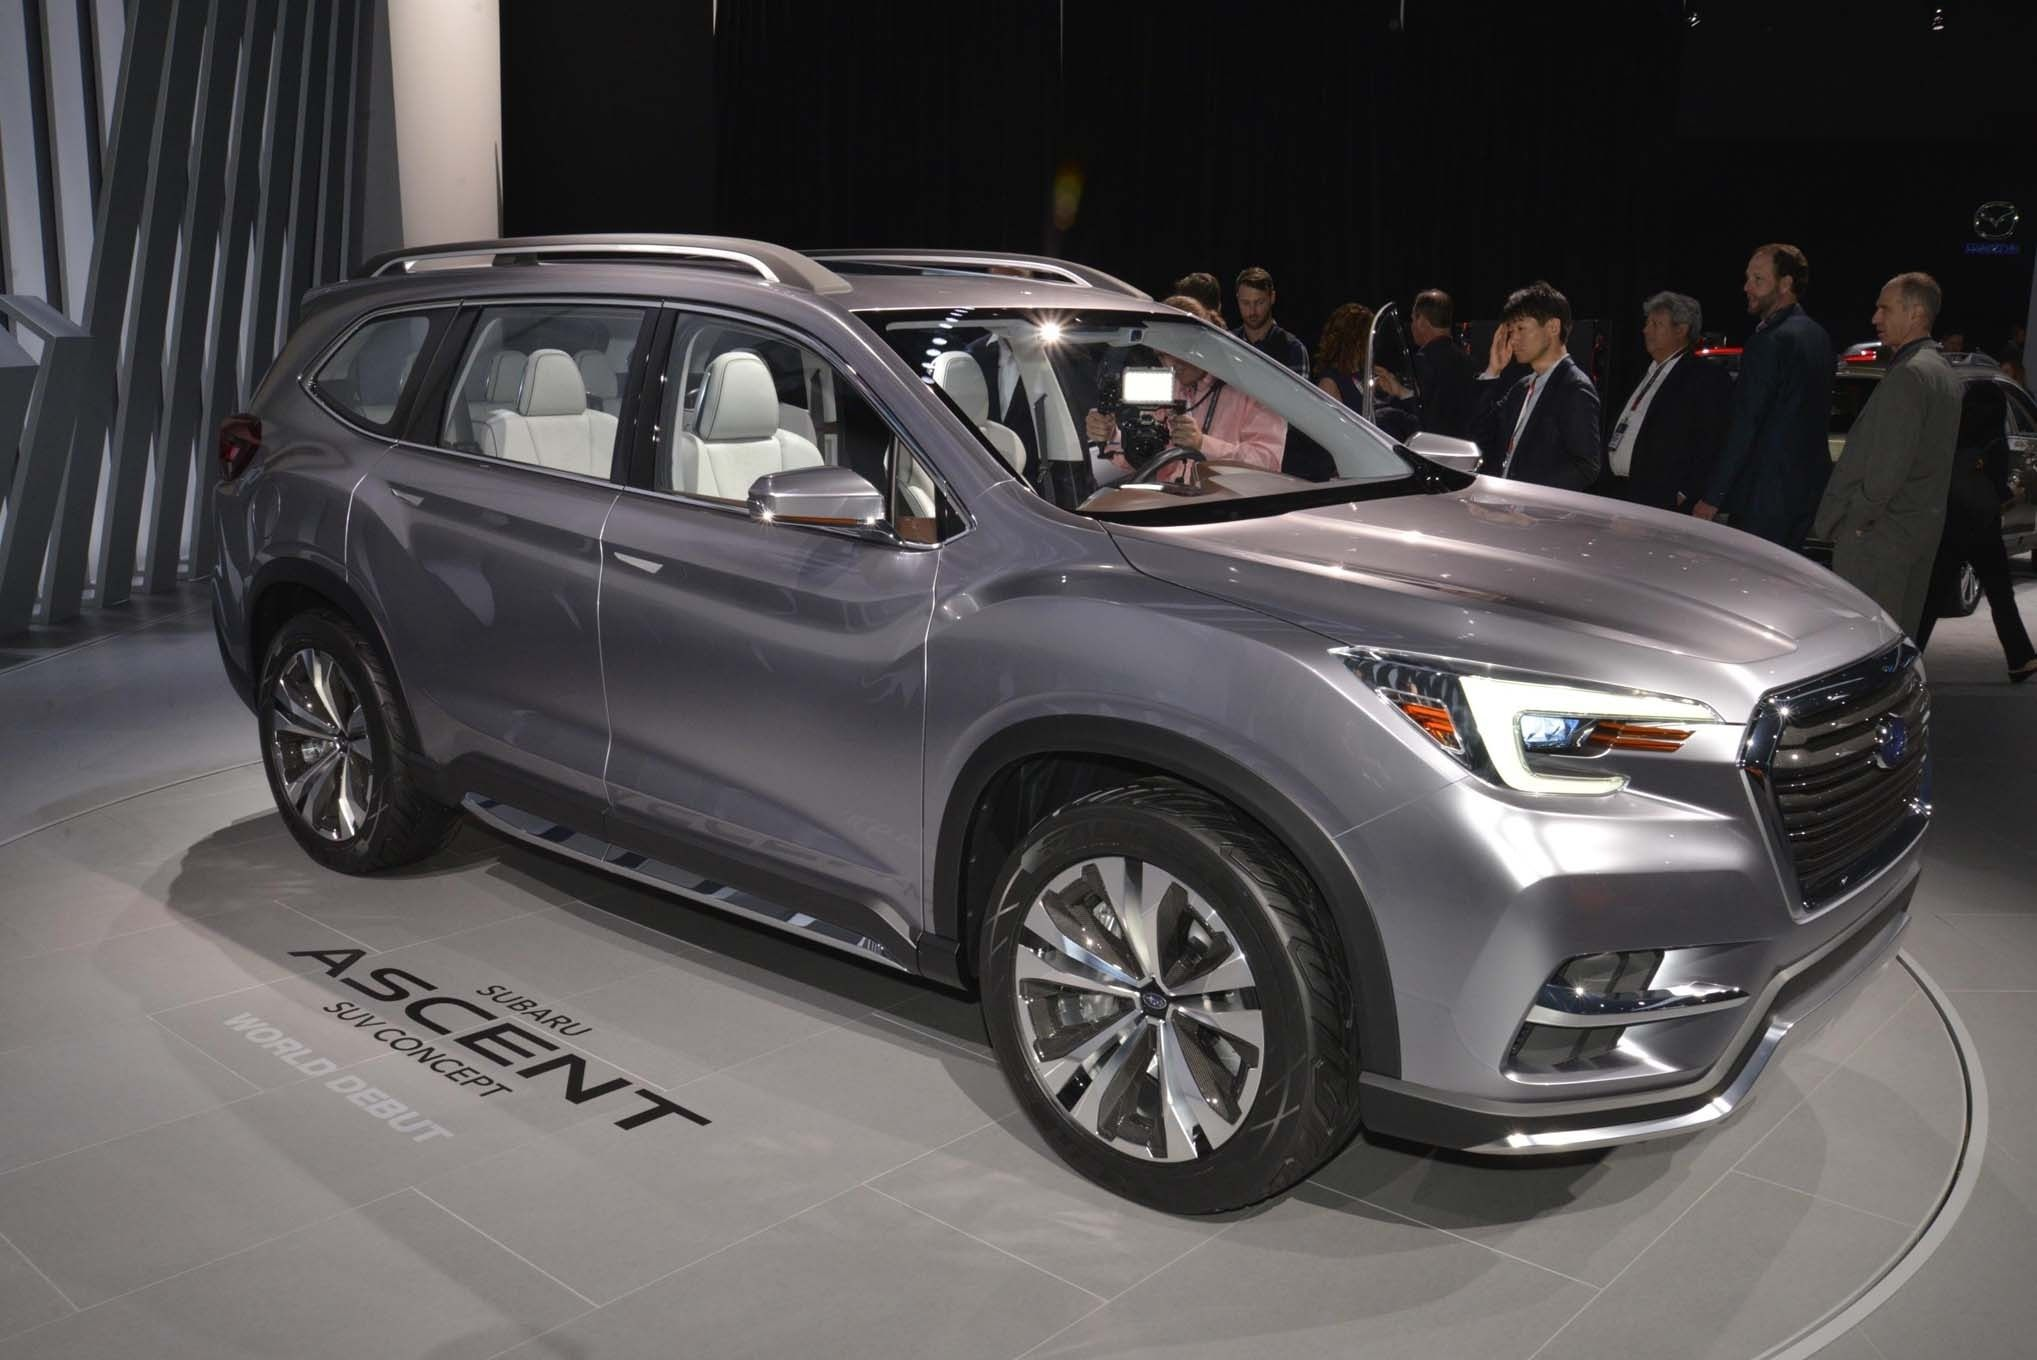 2019 Subaru Outback Exterior And Interior Review Car And Home